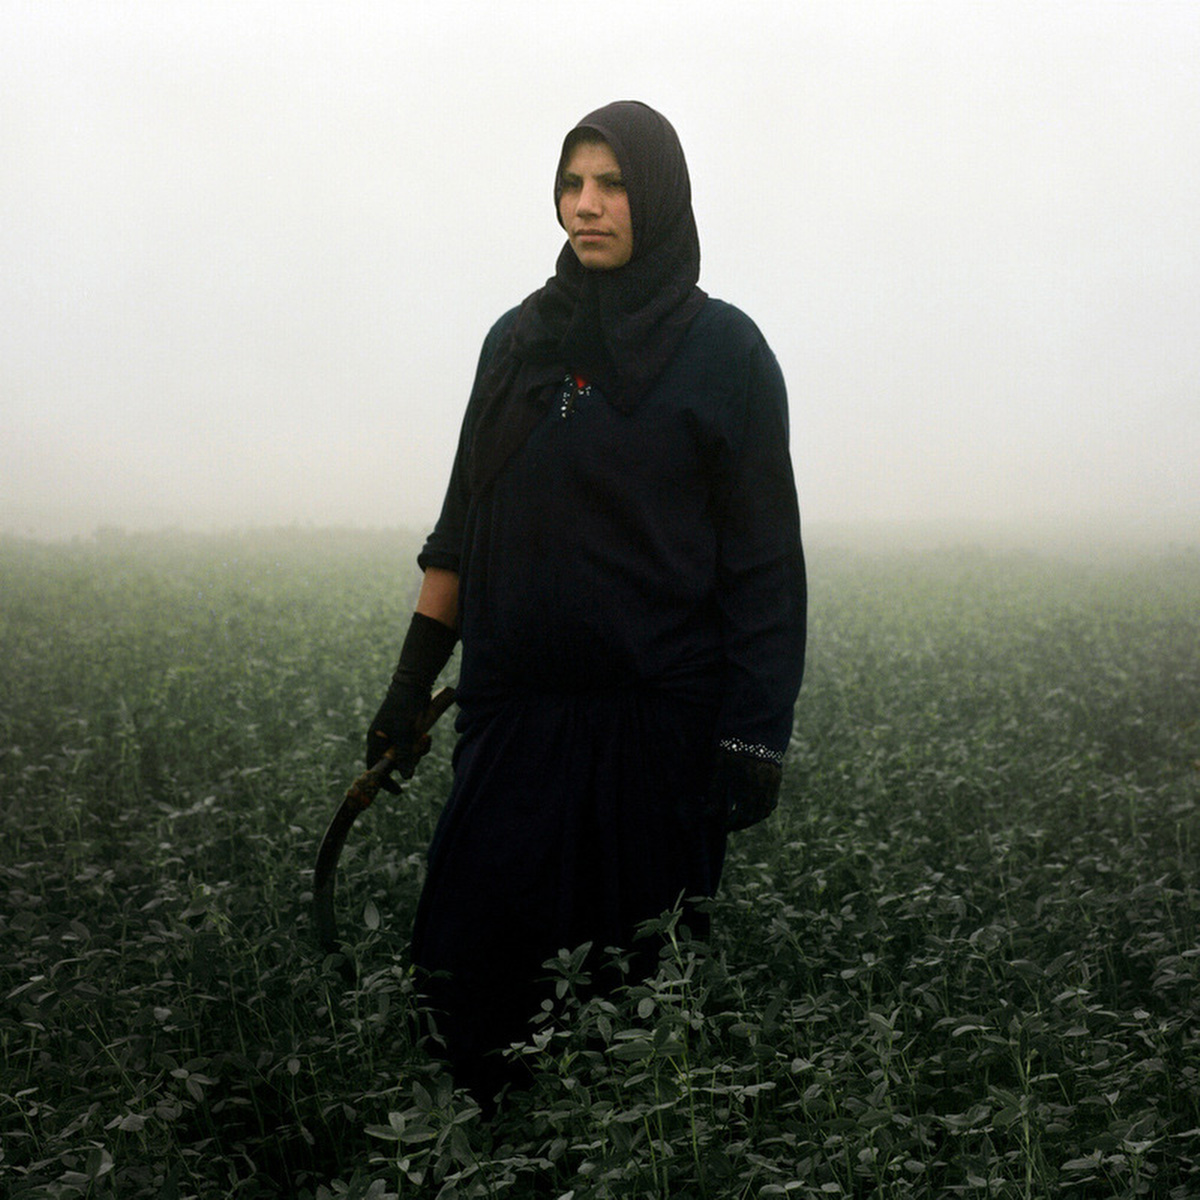 Hameeda, a mother and a farmer, removes weeds from a plot of land in the early morning hours. She gets paid 25 Egyptian pounds for a day's work (US$3.6).